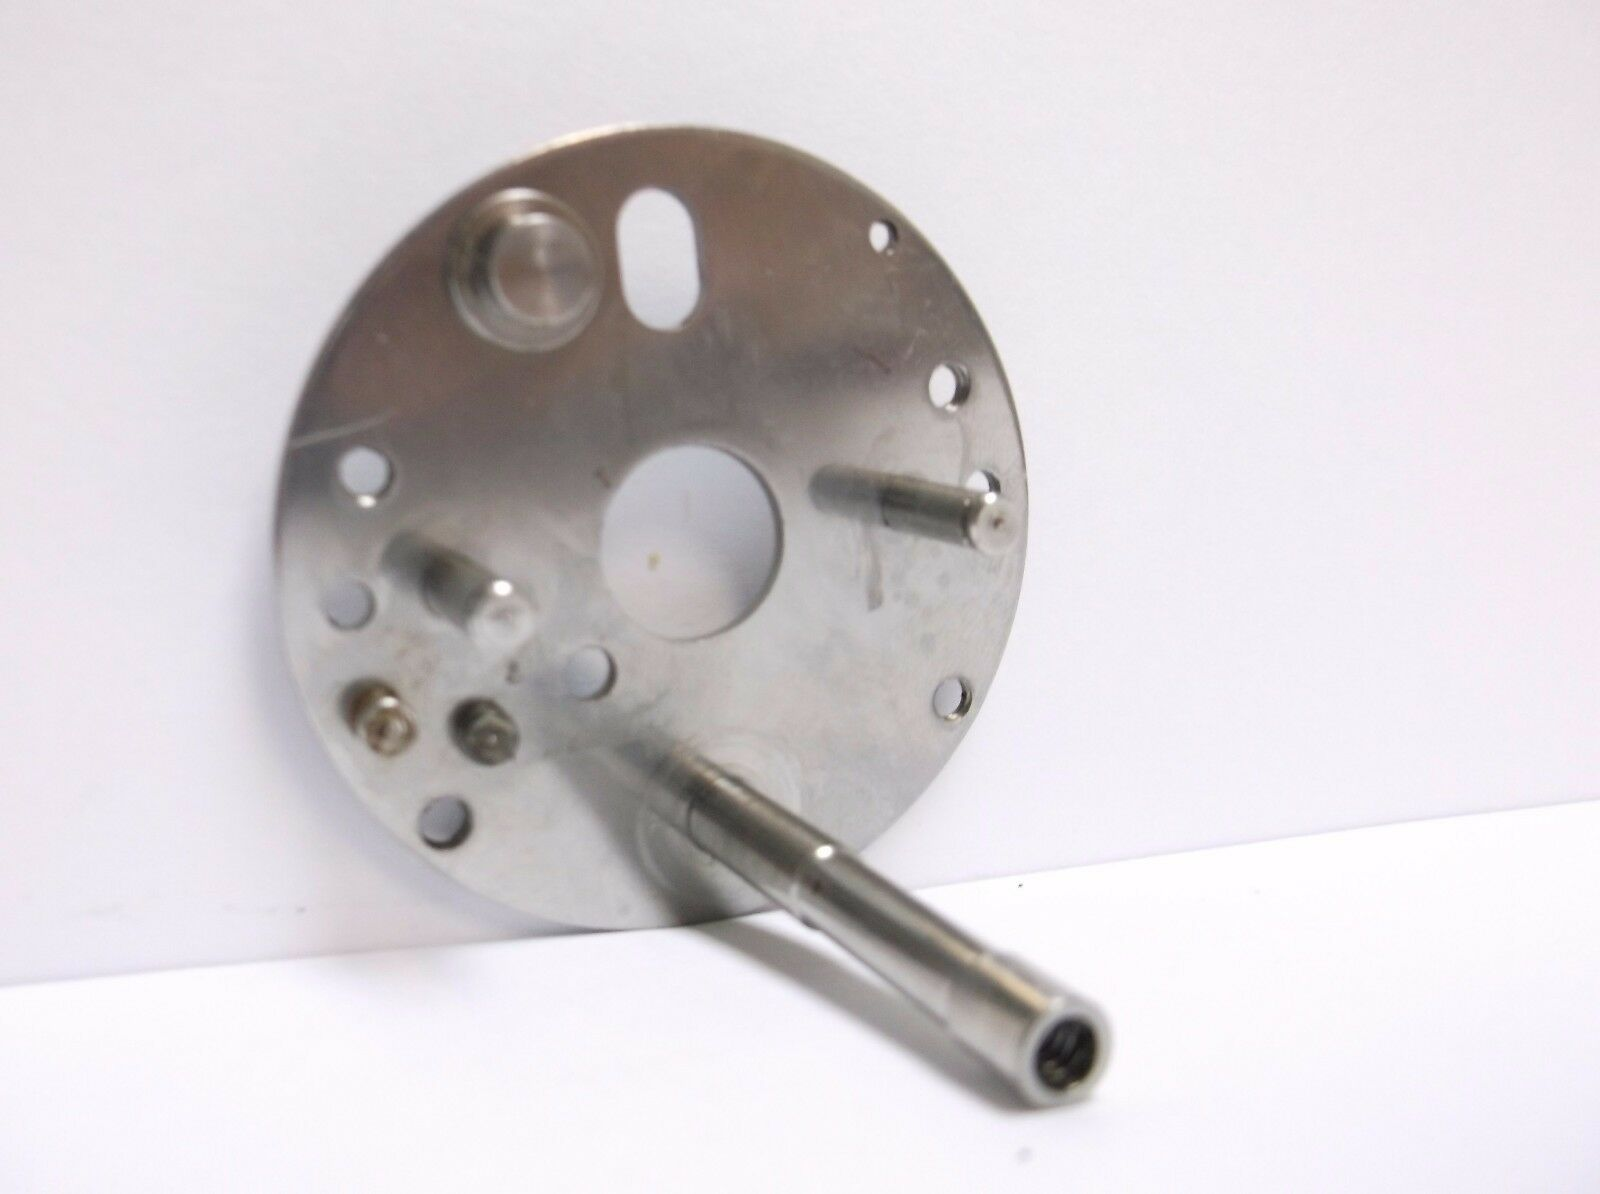 USED NEWELL CONVENTIONAL REEL PART - S 447 3.6 - Bridge